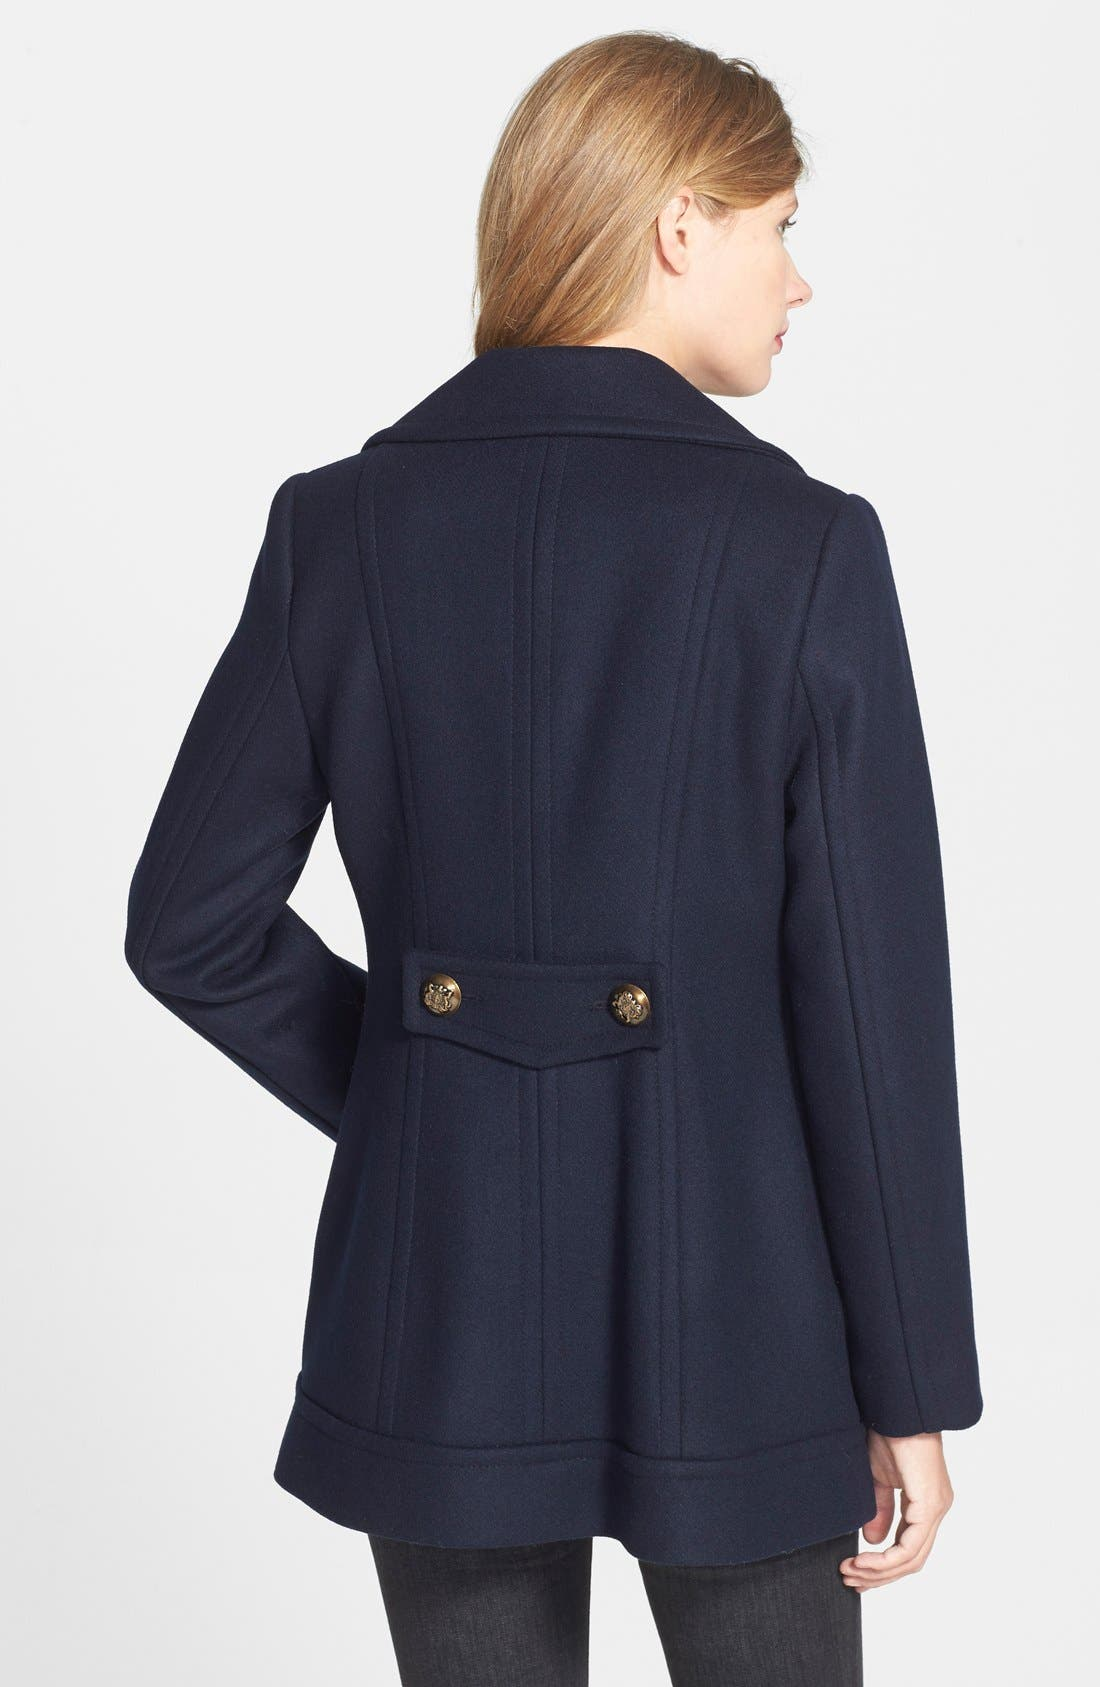 Double Breasted Wool Blend Peacoat,                             Alternate thumbnail 2, color,                             001